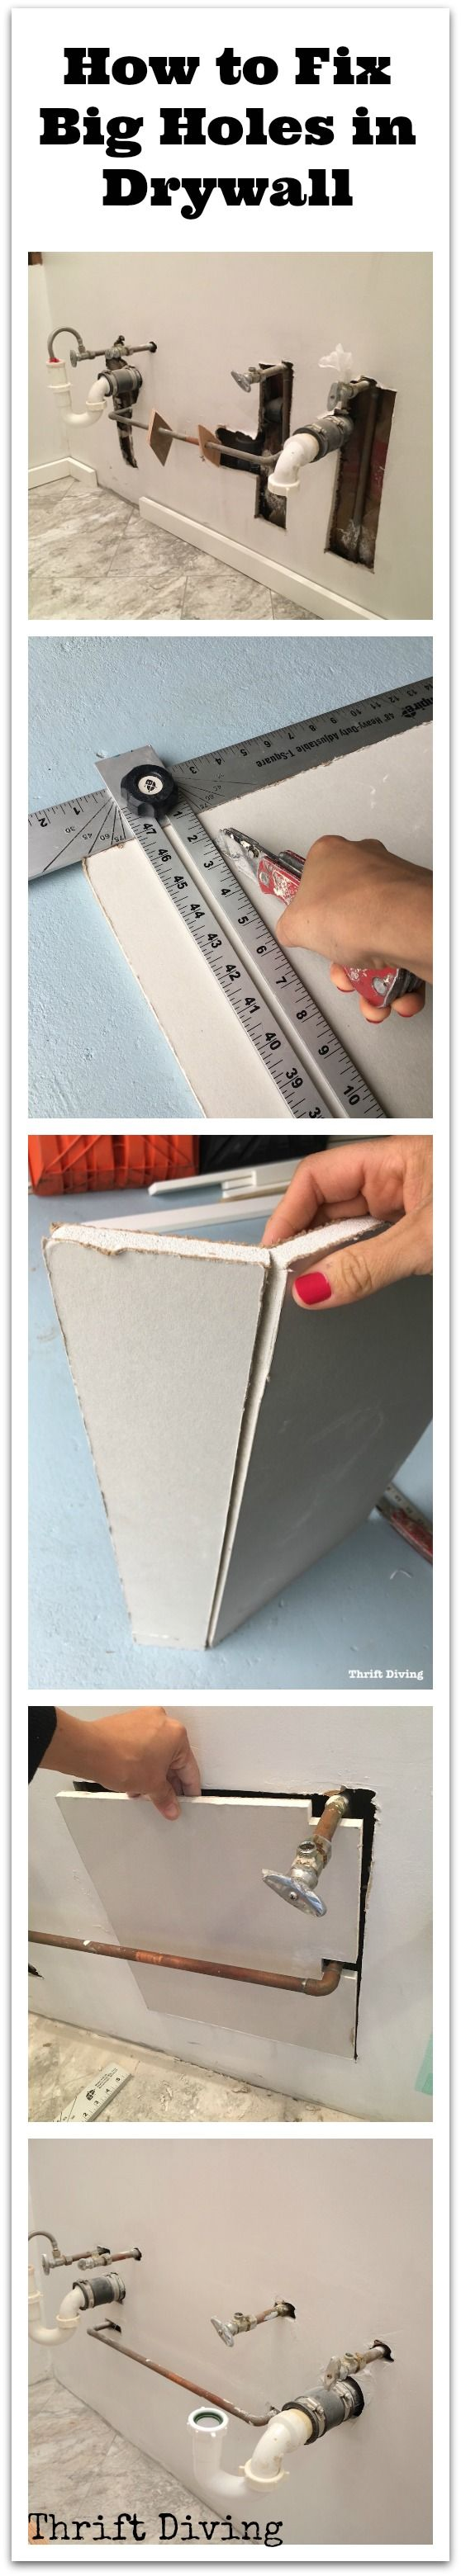 How to Fix Big Holes in Drywall - Drywall repair that will allow you to skip hiring a handyman or handywoman! - Thrift Diving